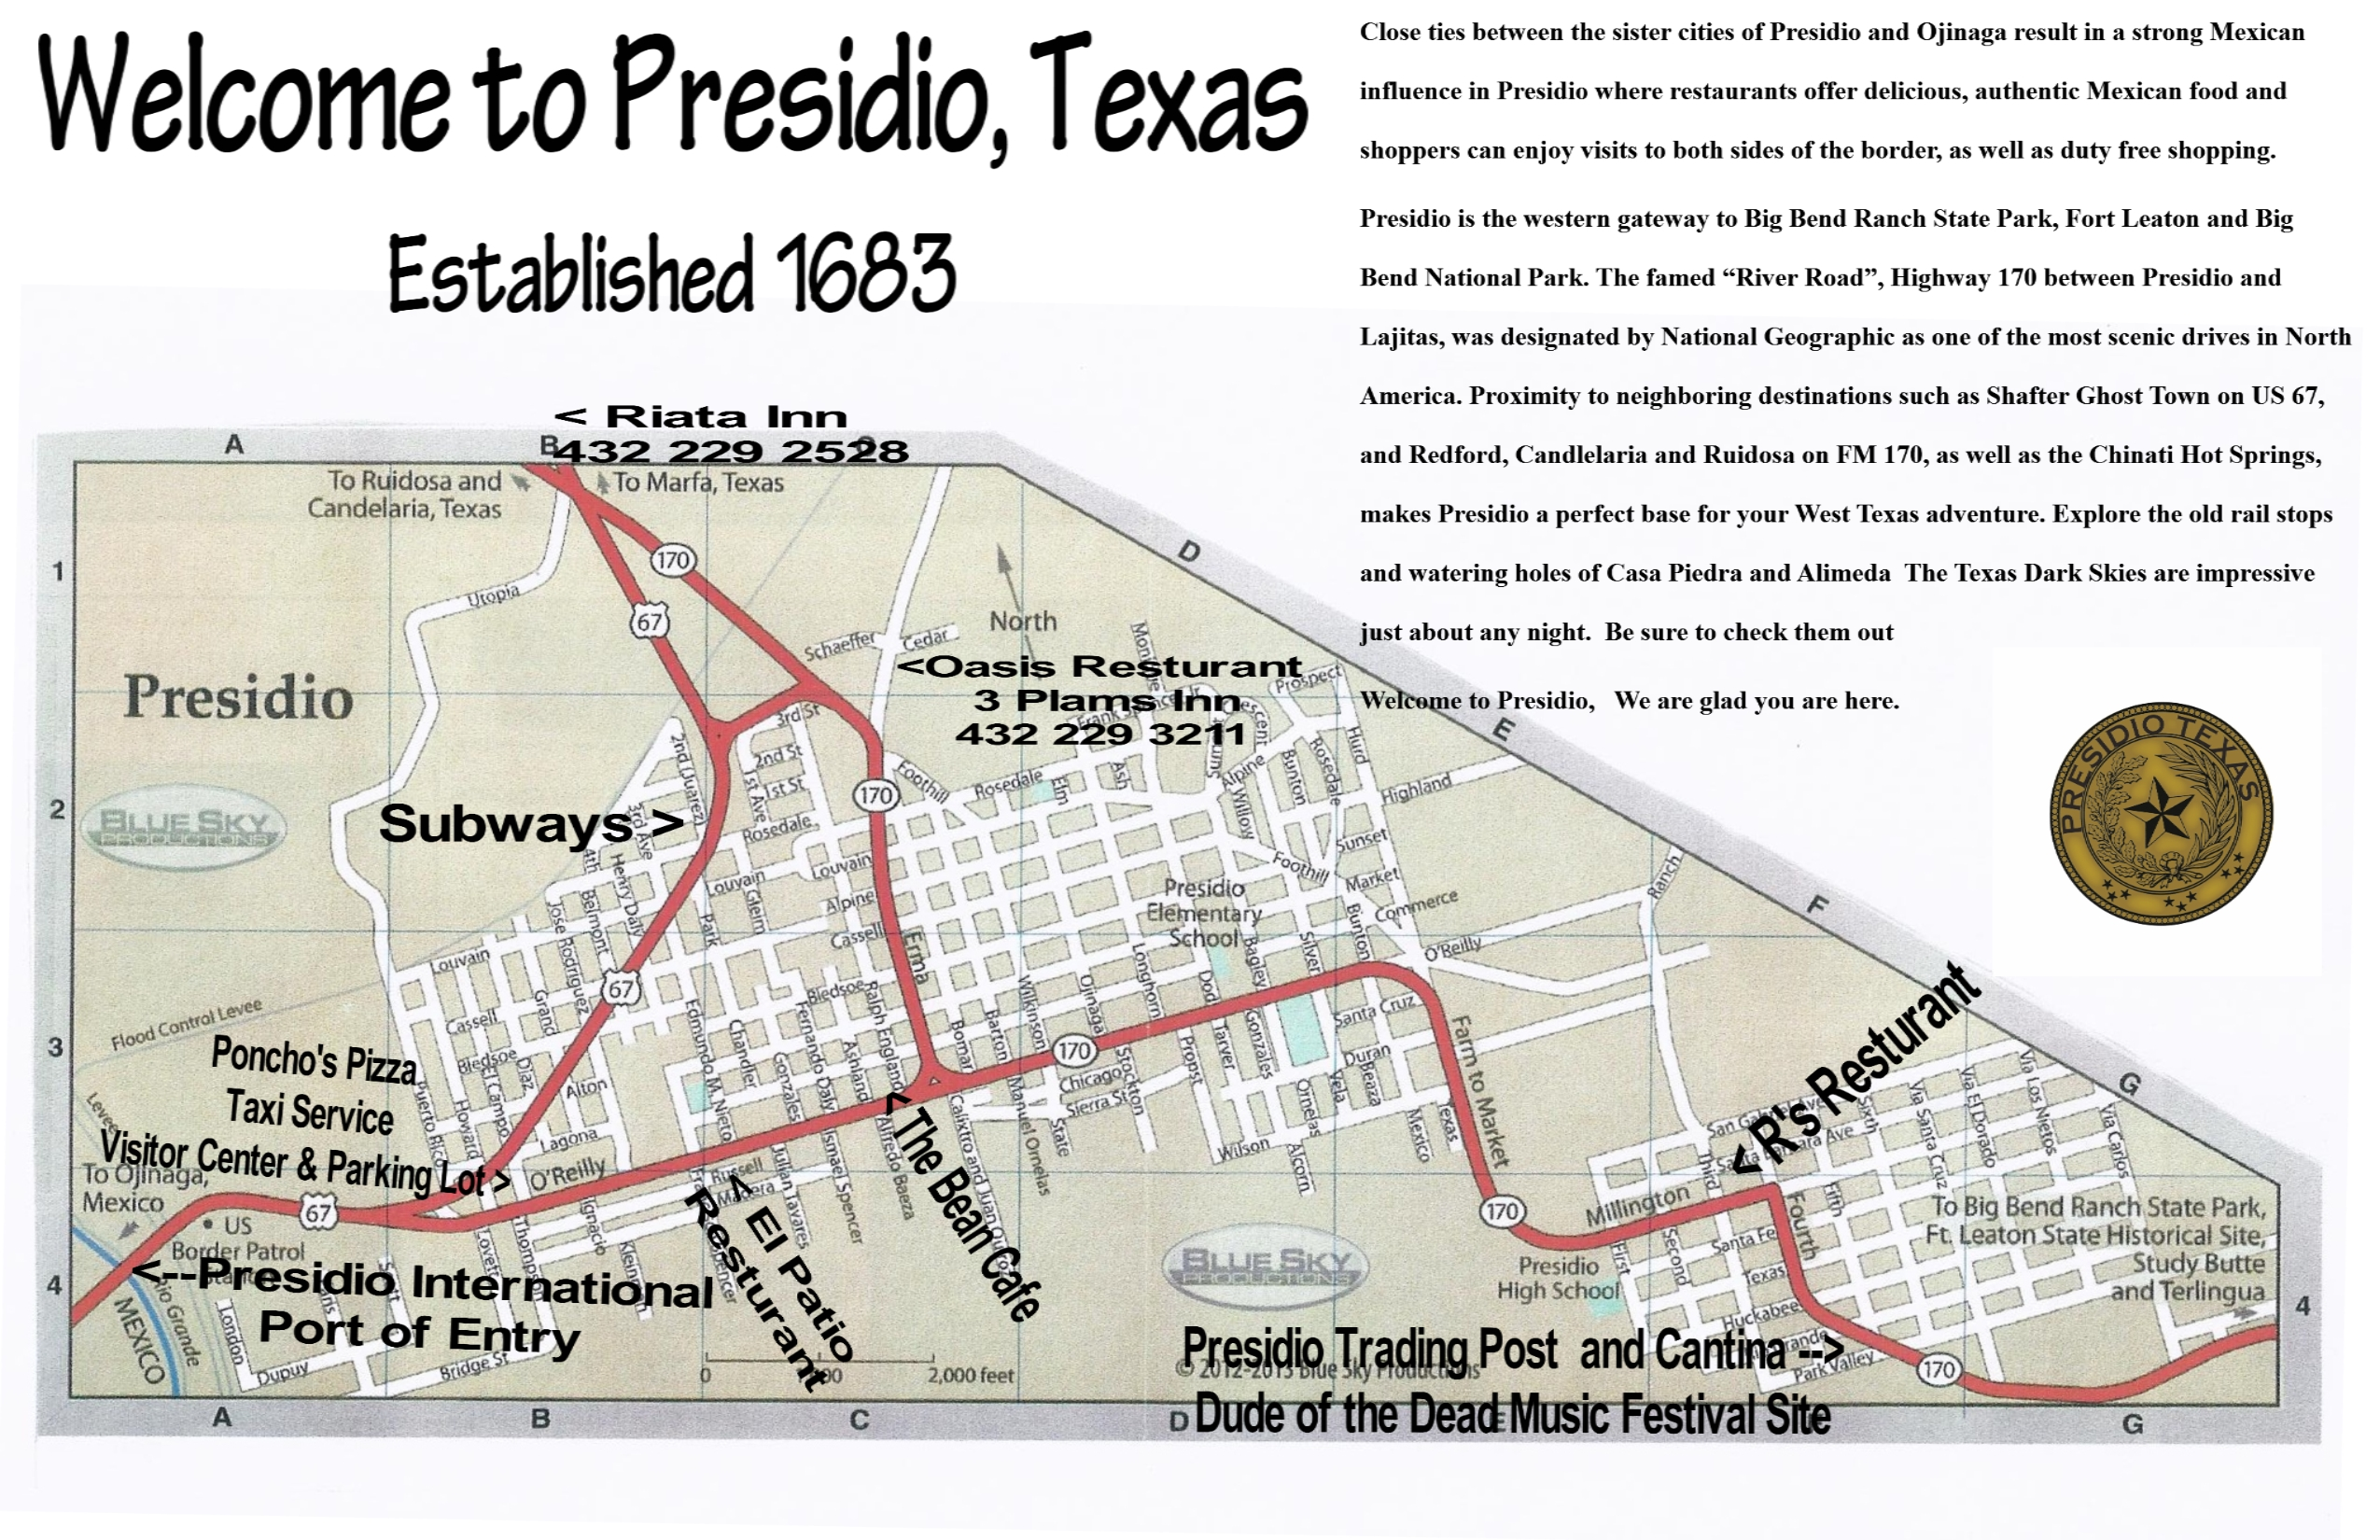 presidio-dude-map